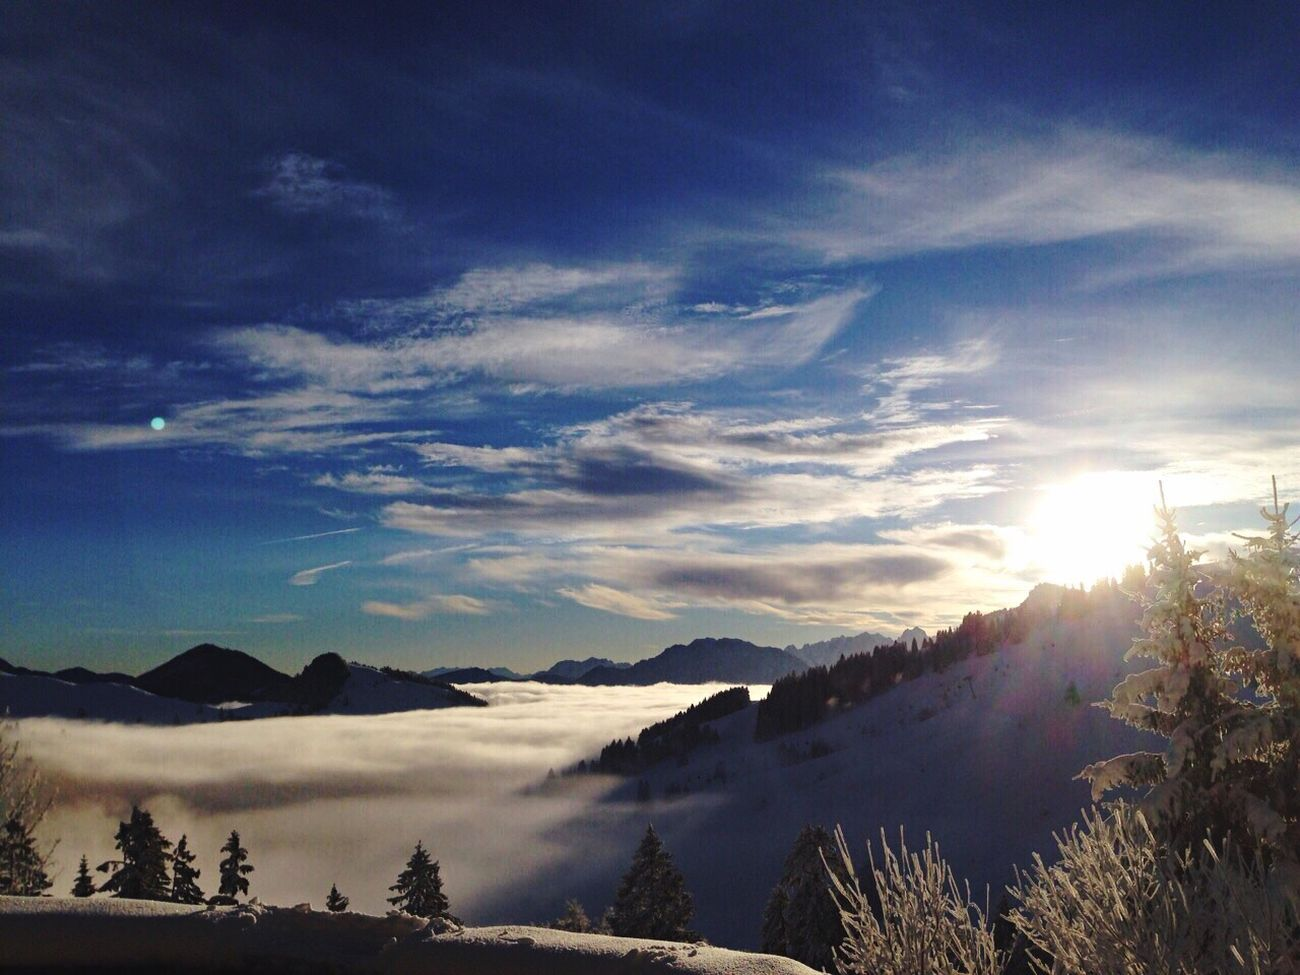 Throwback Photography EyeEm Best Shots - Nature Nature Simple Photography Snow Germany Alps Sun Beautiful Popular Photos EyeEm Nature Lover Sun_collection OneYearAgo Sunshine LastYear Winter_collection OverTheClouds Mountains Mountain View